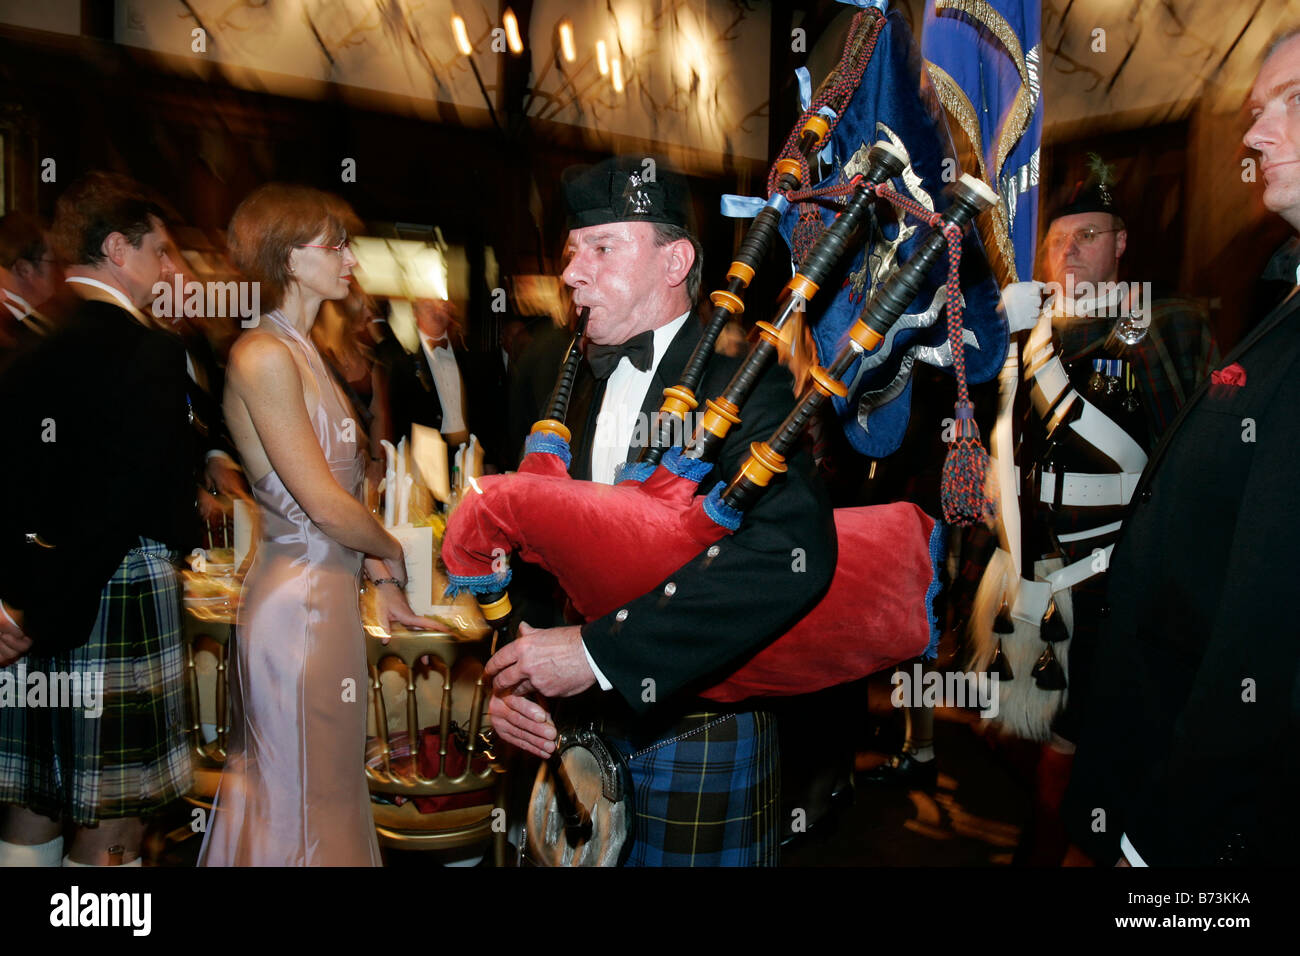 A piper leads in the guests at a traditional Burns Night supper - Stock Image